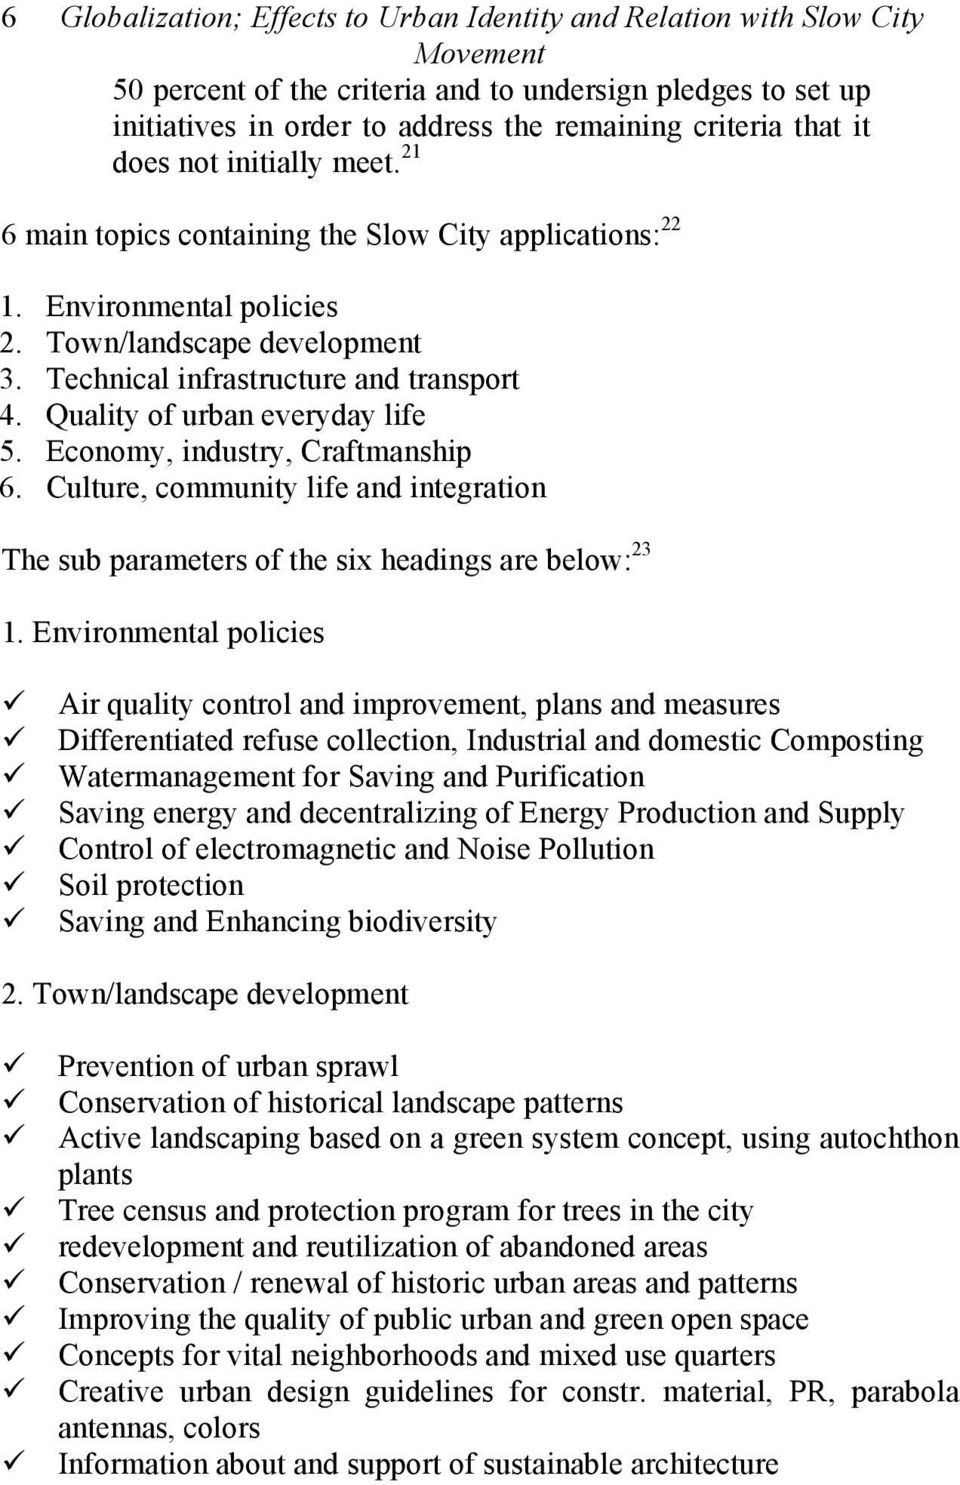 Quality of urban everyday life 5. Economy, industry, Craftmanship 6. Culture, community life and integration The sub parameters of the six headings are below: 23 1. Environmental policies!